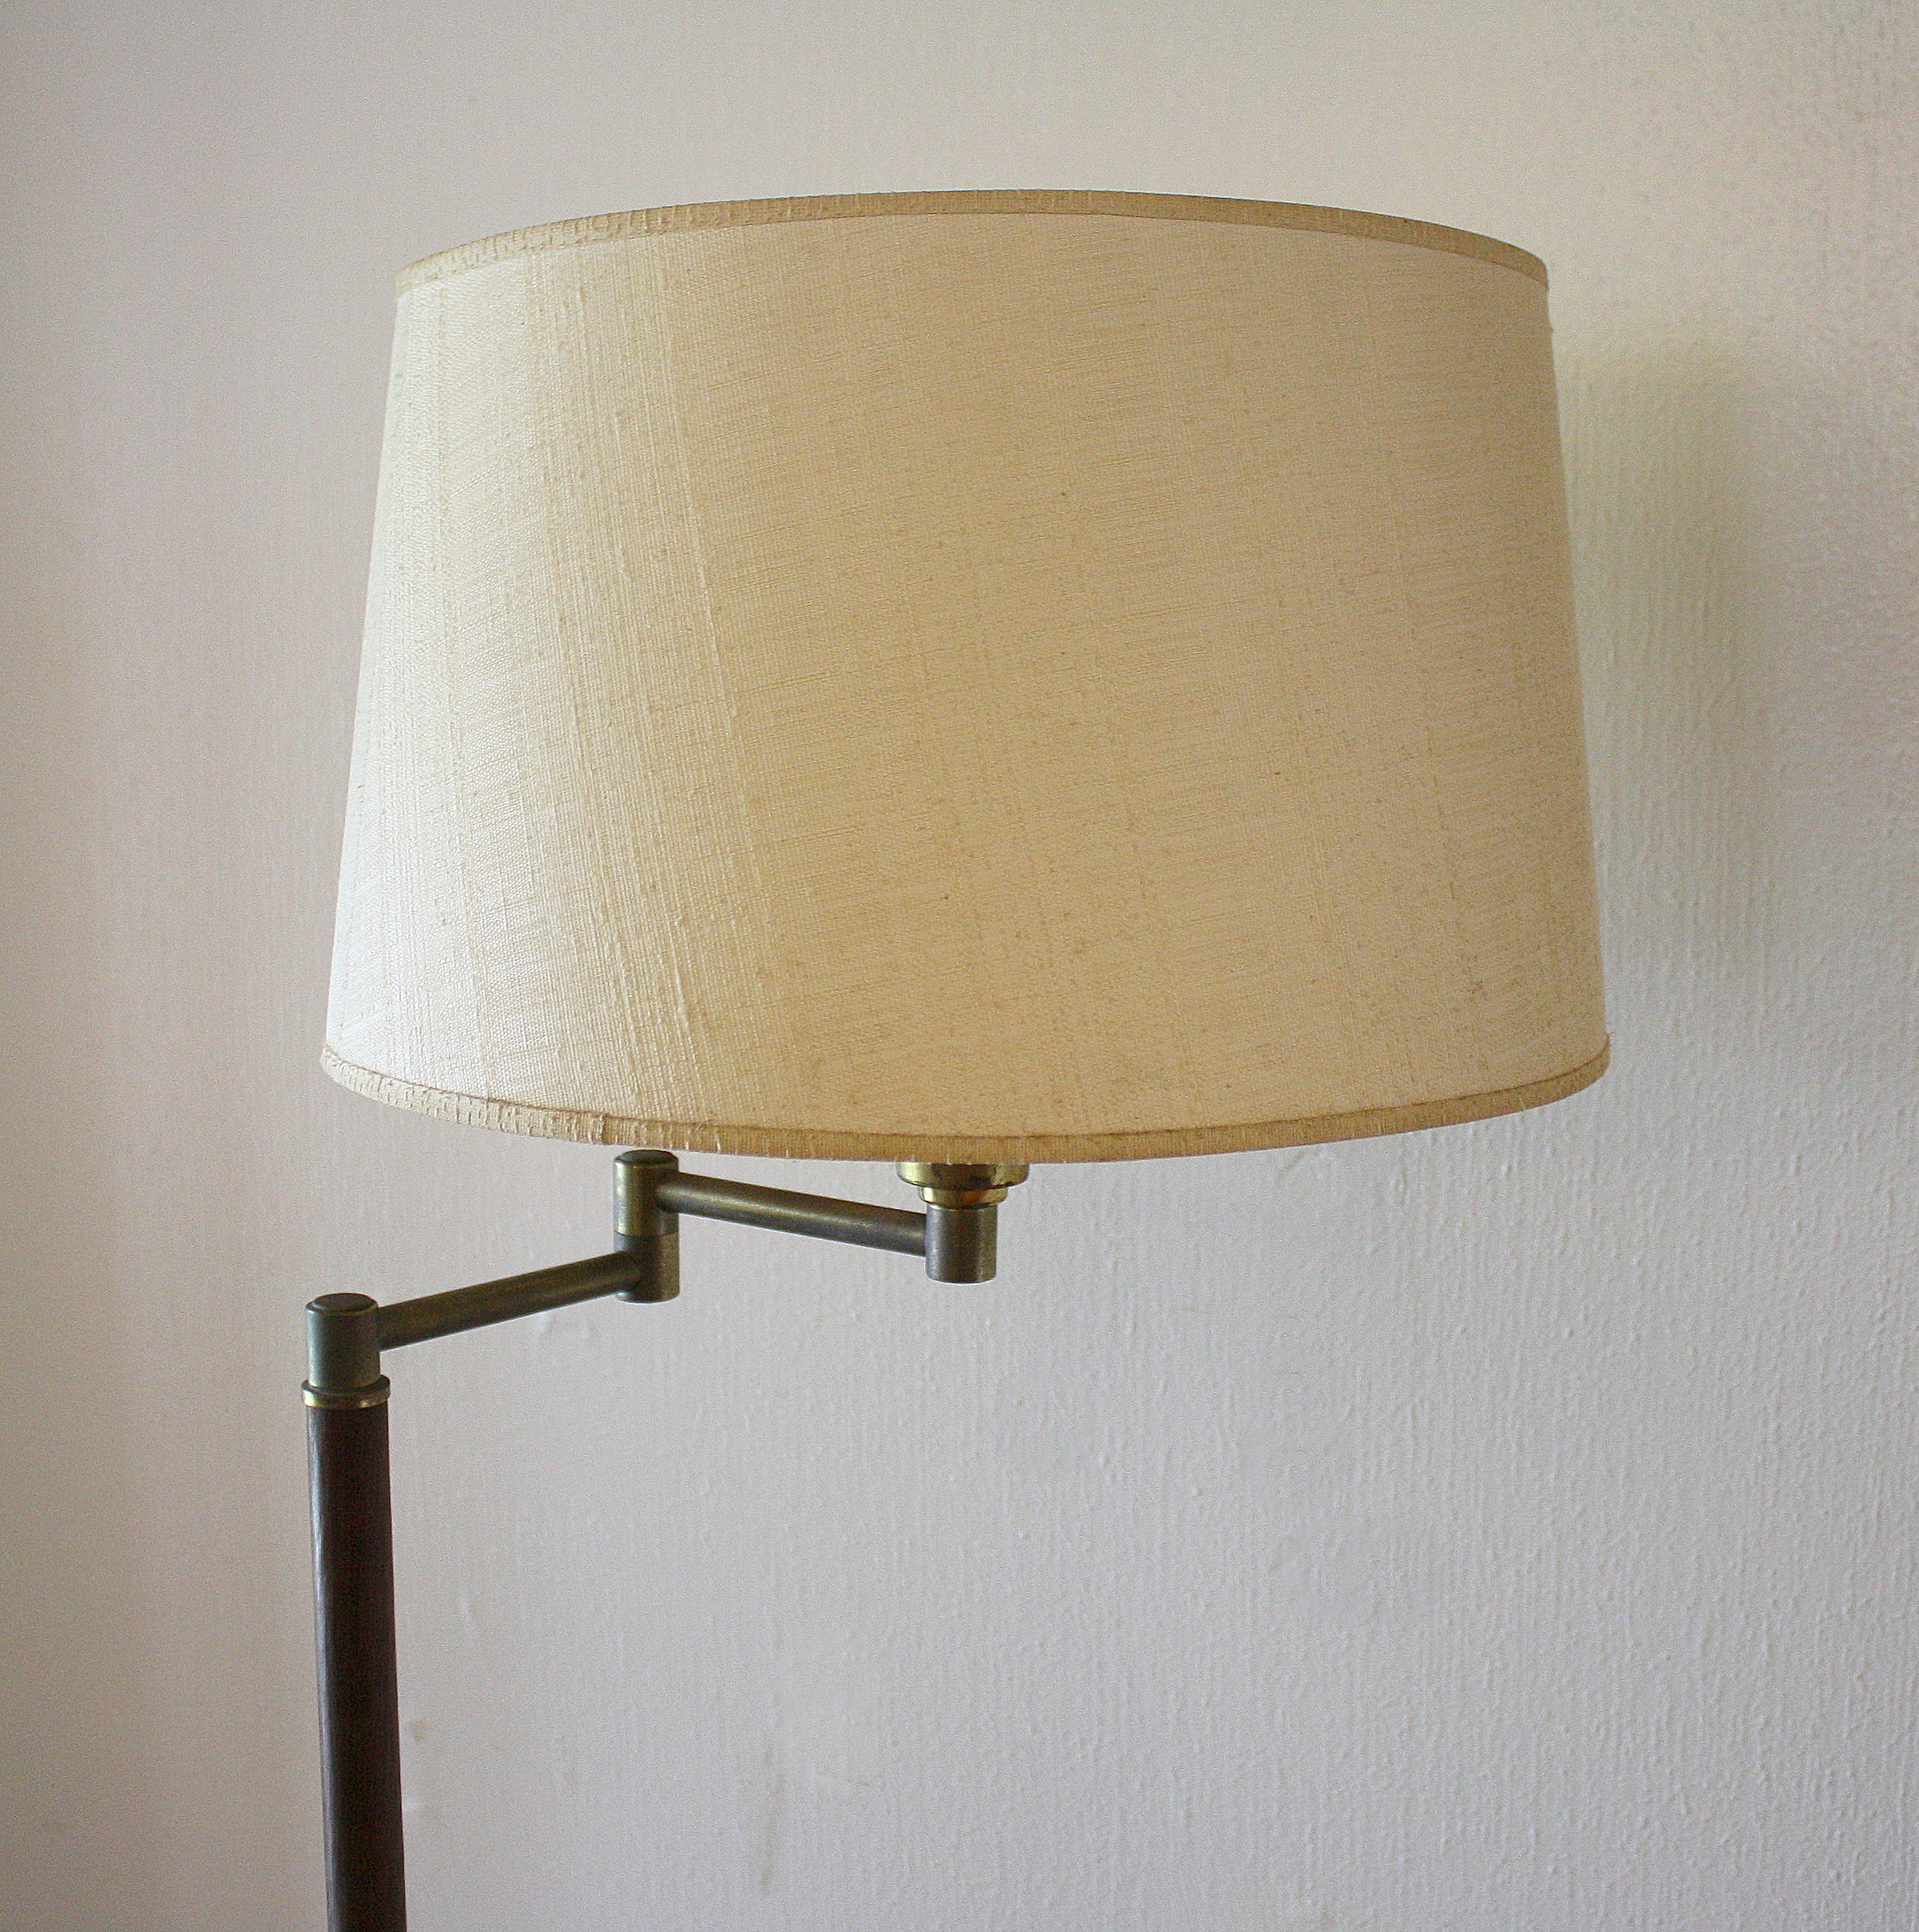 These are two mid century modern swing arm floor lamps they have wood